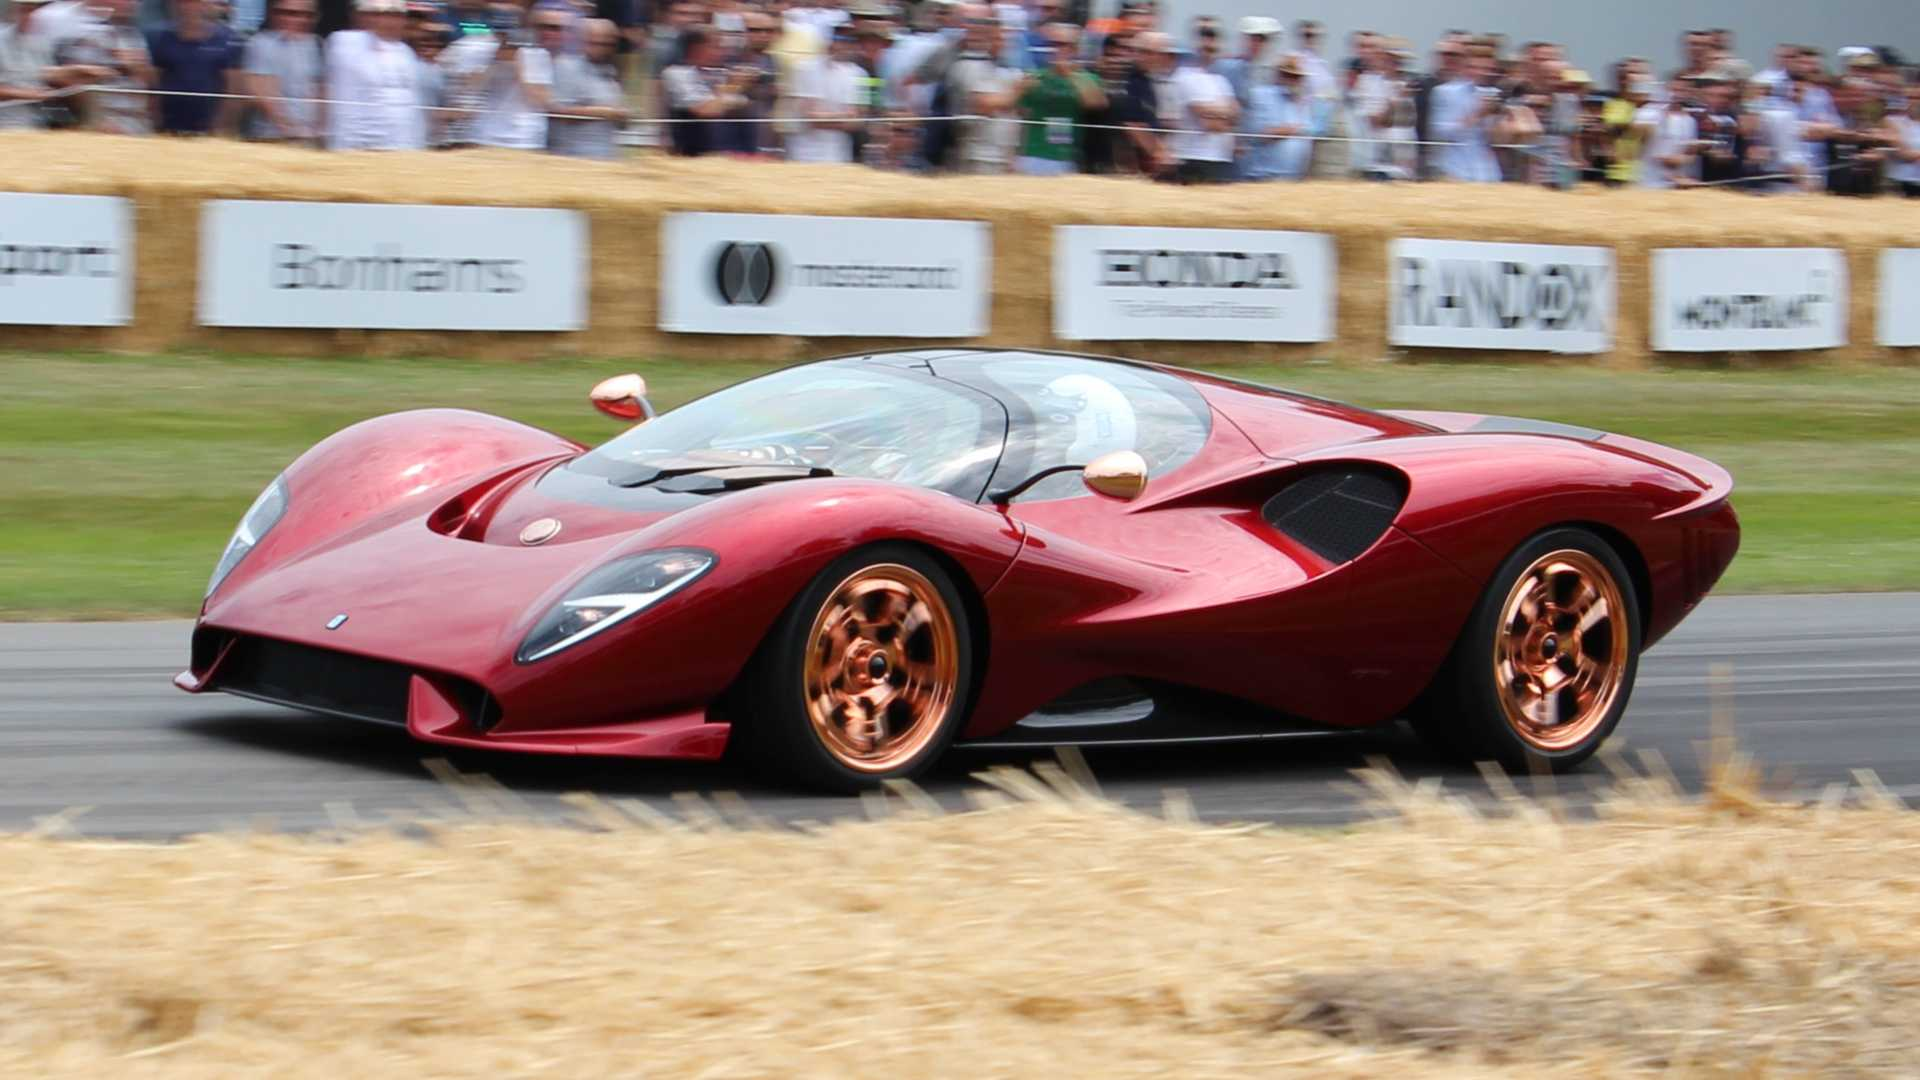 de-tomaso-​p72-at-the​-2019-good​wood-festi​val-of-spe​ed.jpg